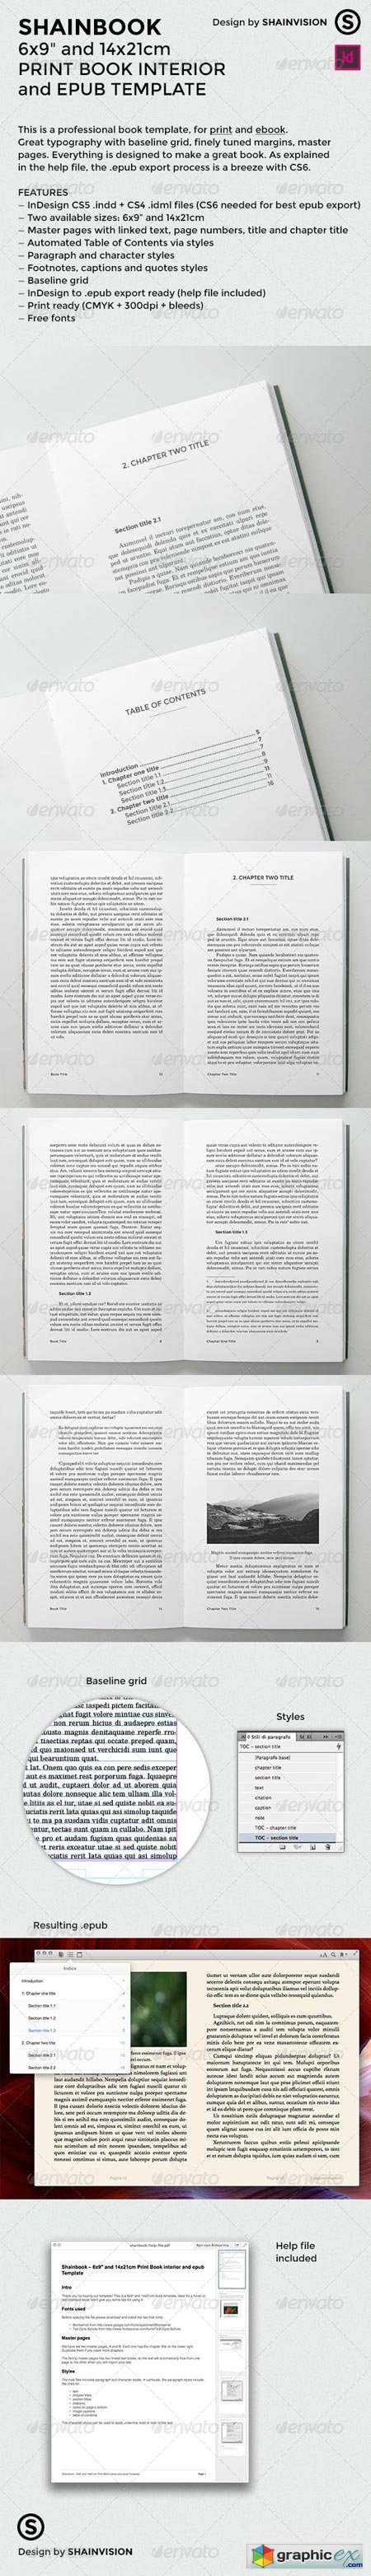 Shainbook � Print Book interior and epub Template 6603505